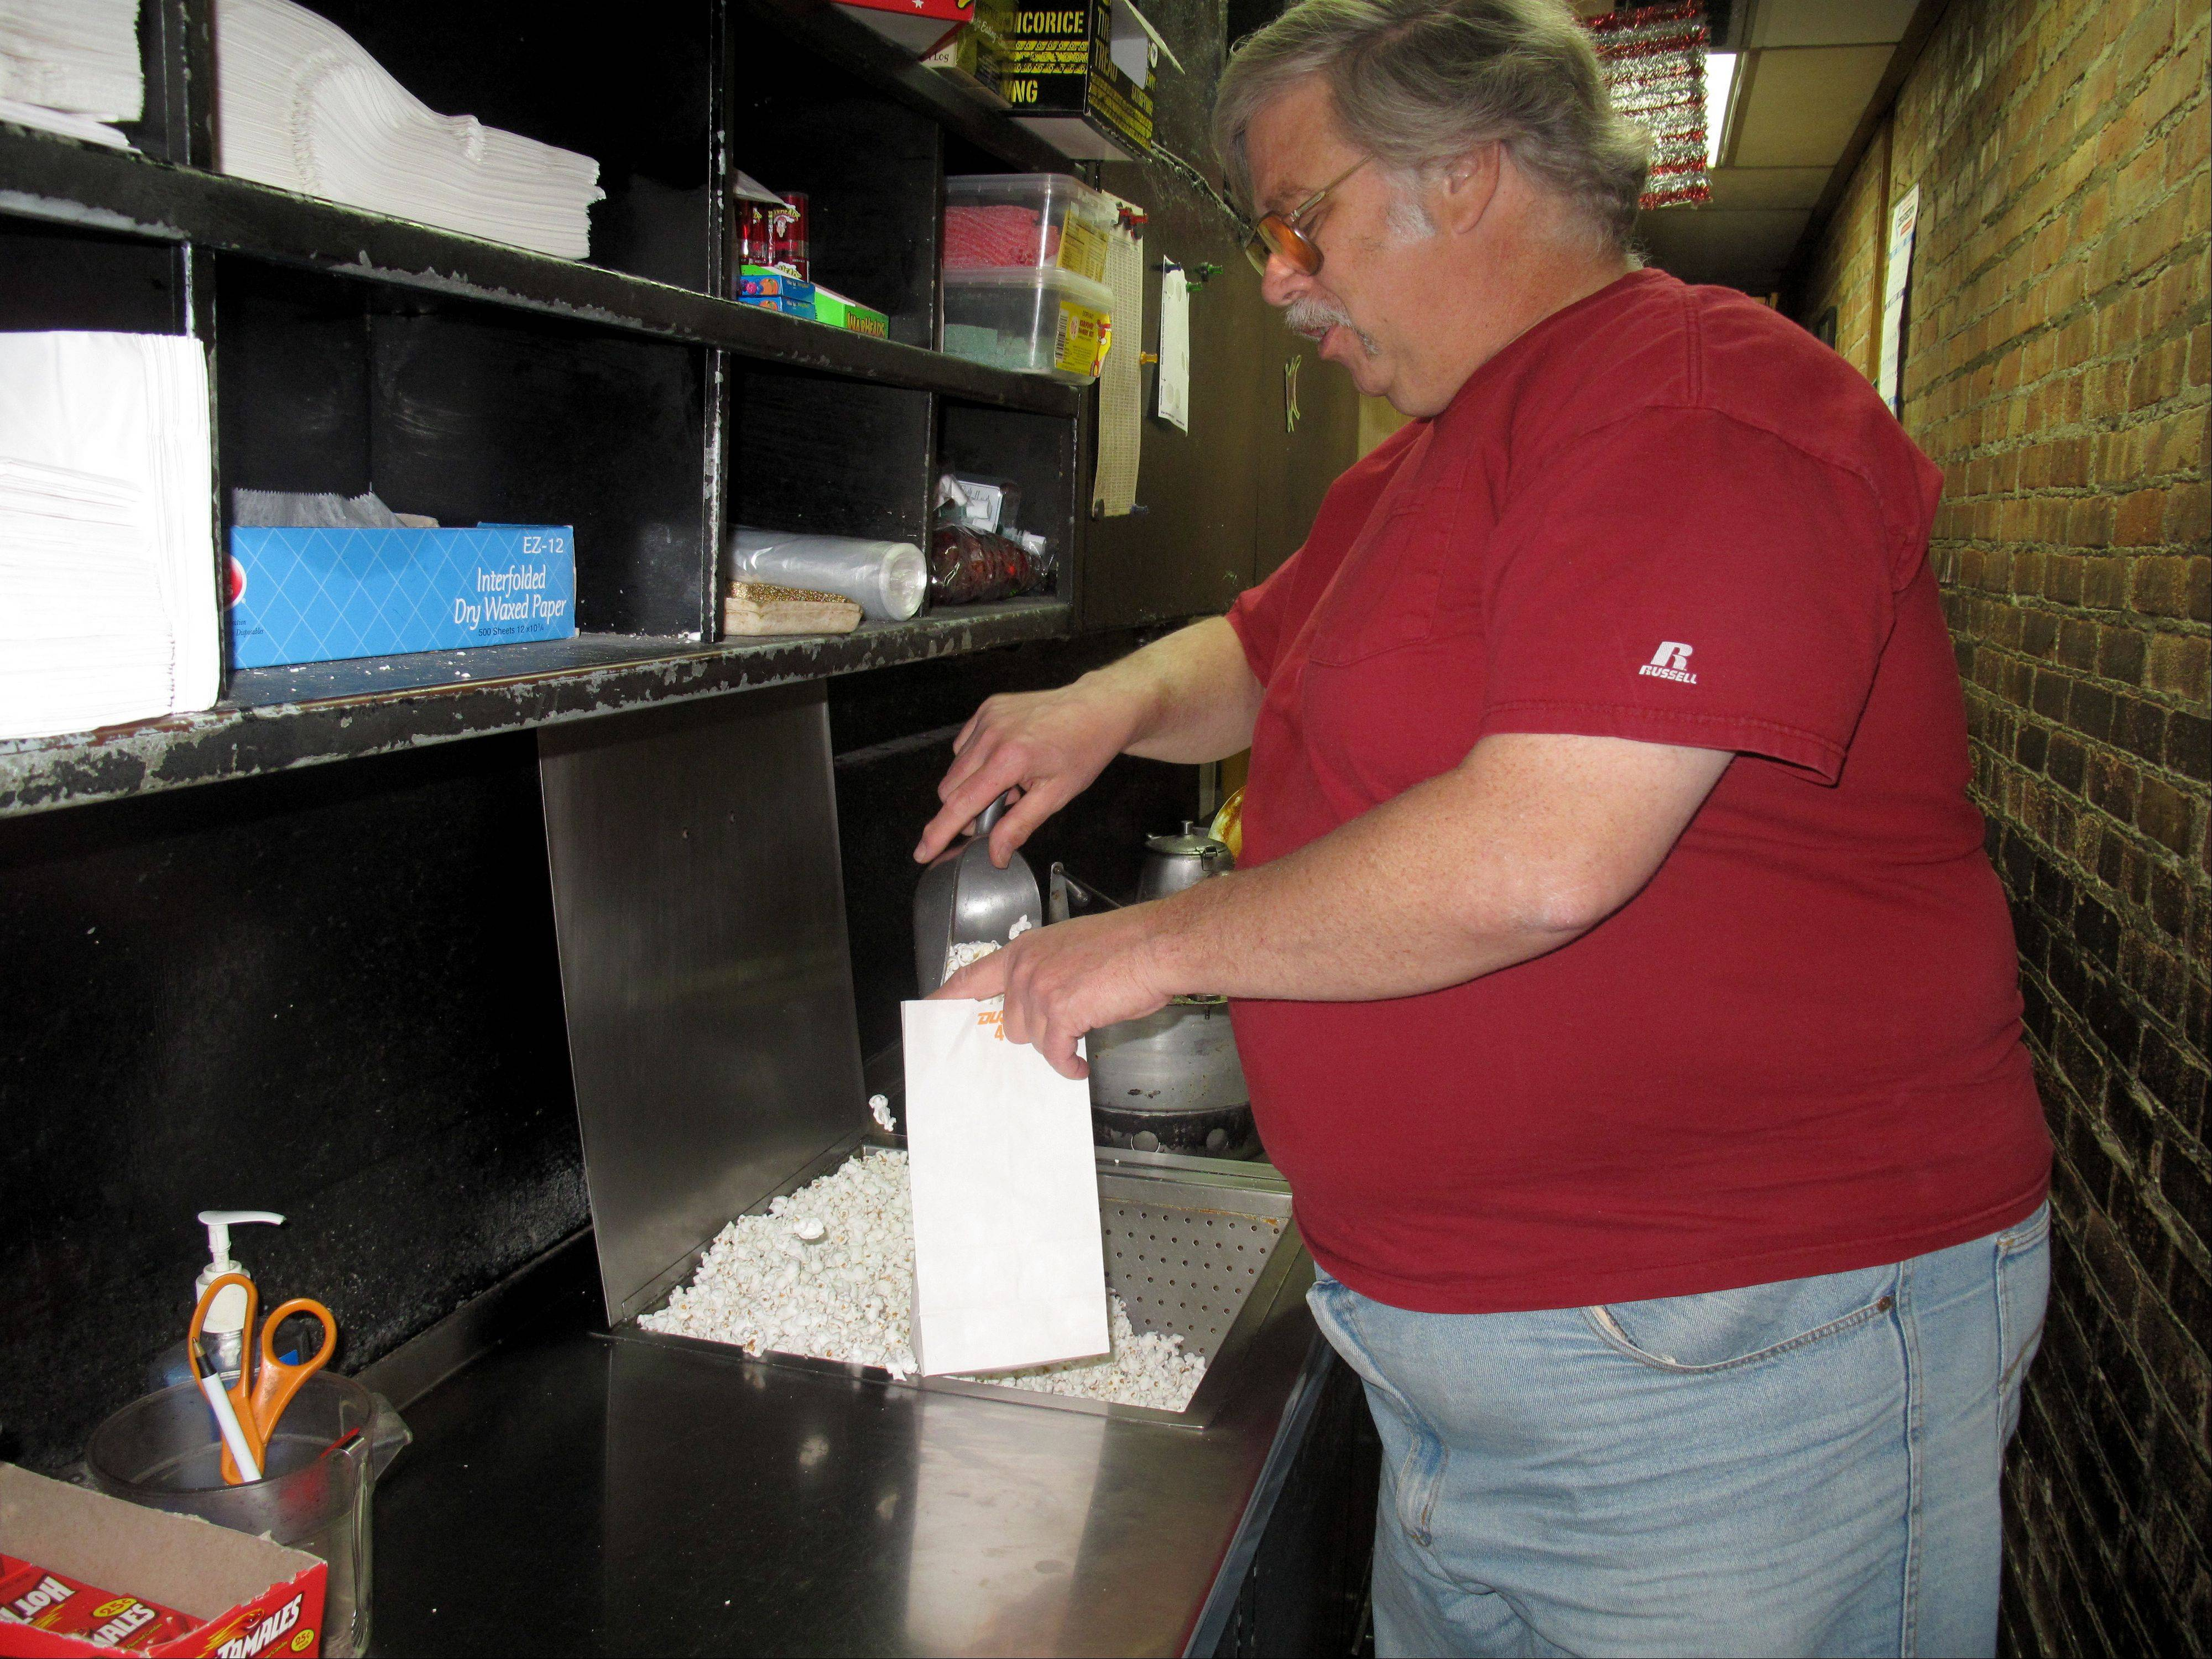 Bill Wakefield fills a small bag of popcorn for a customer. Wakefield estimates that he goes through 8 tons of popcorn kernels per year.